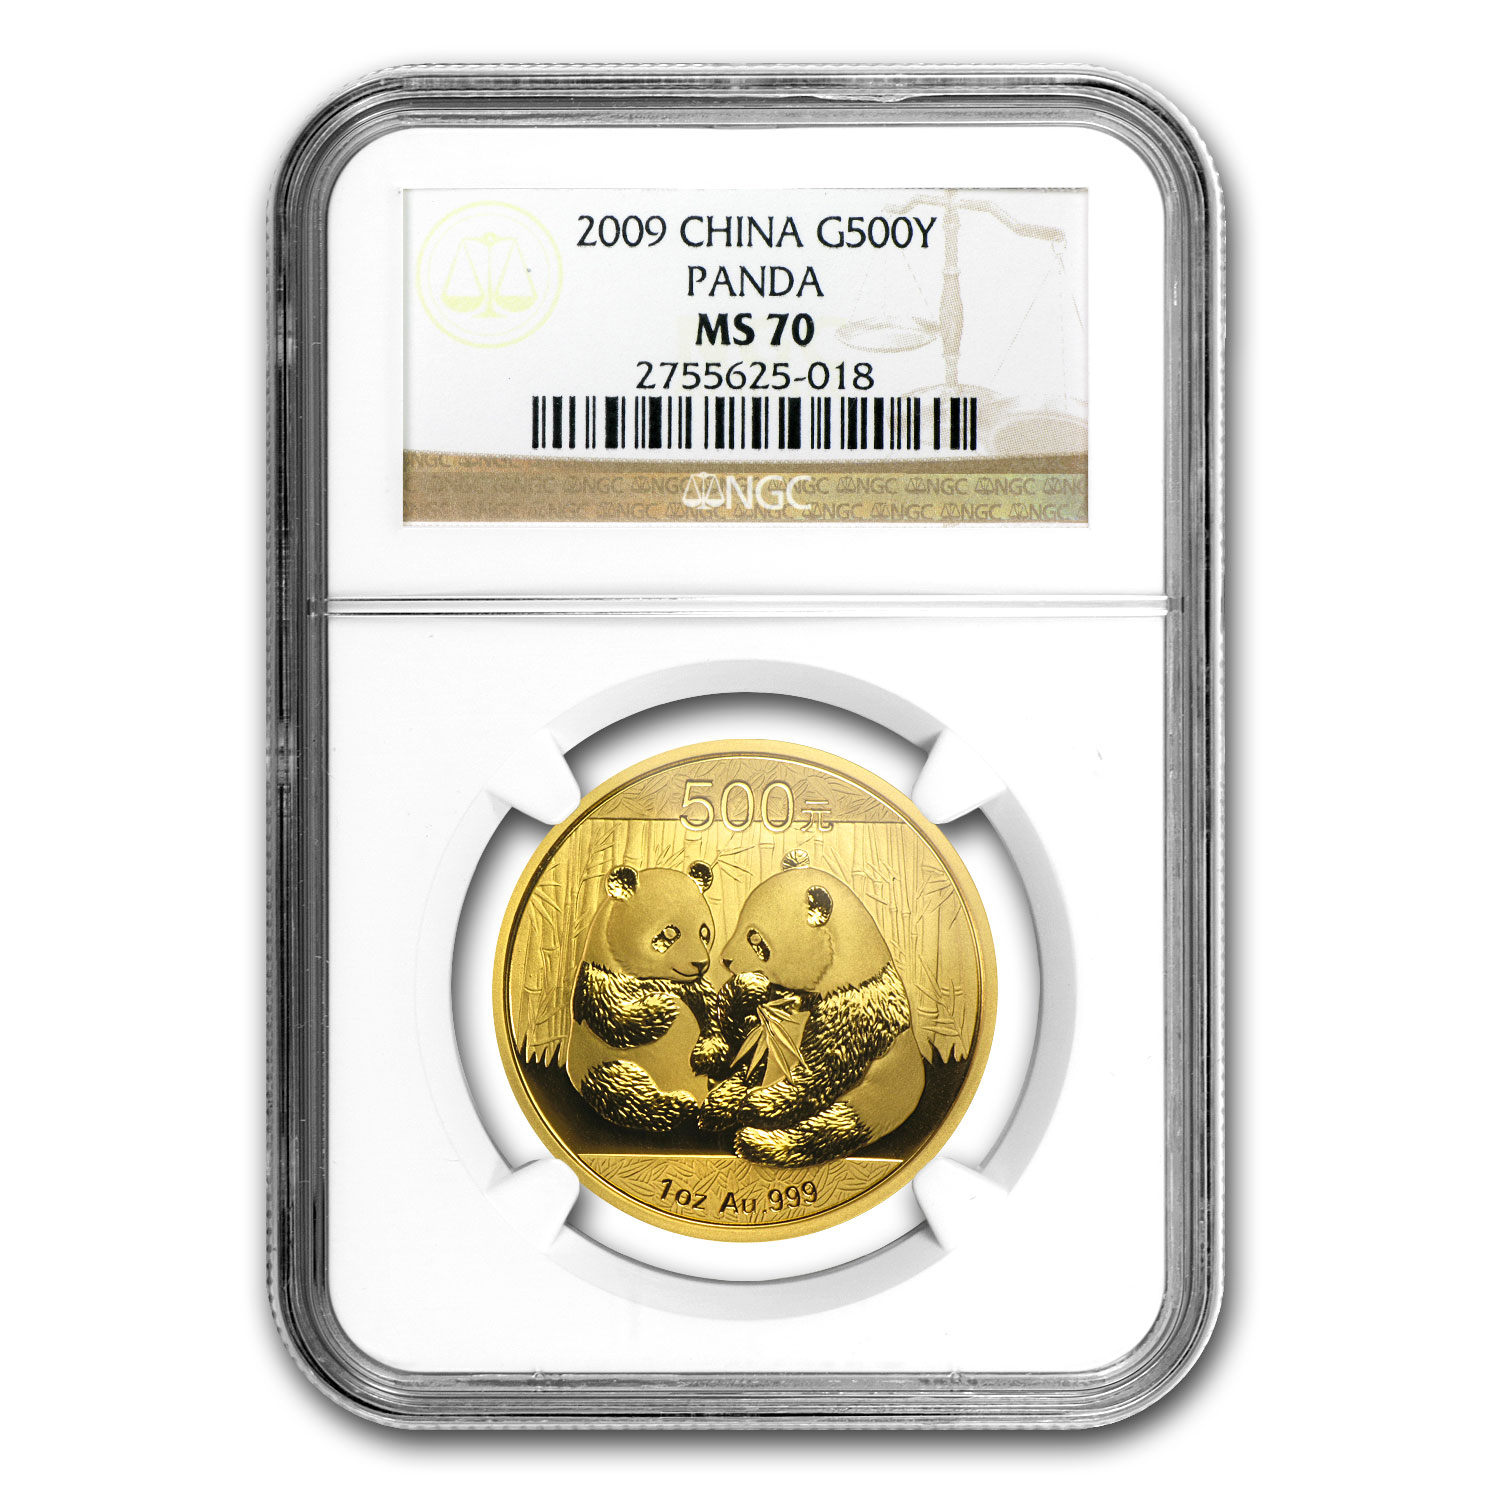 2009 1 oz Gold Chinese Panda MS-70 NGC